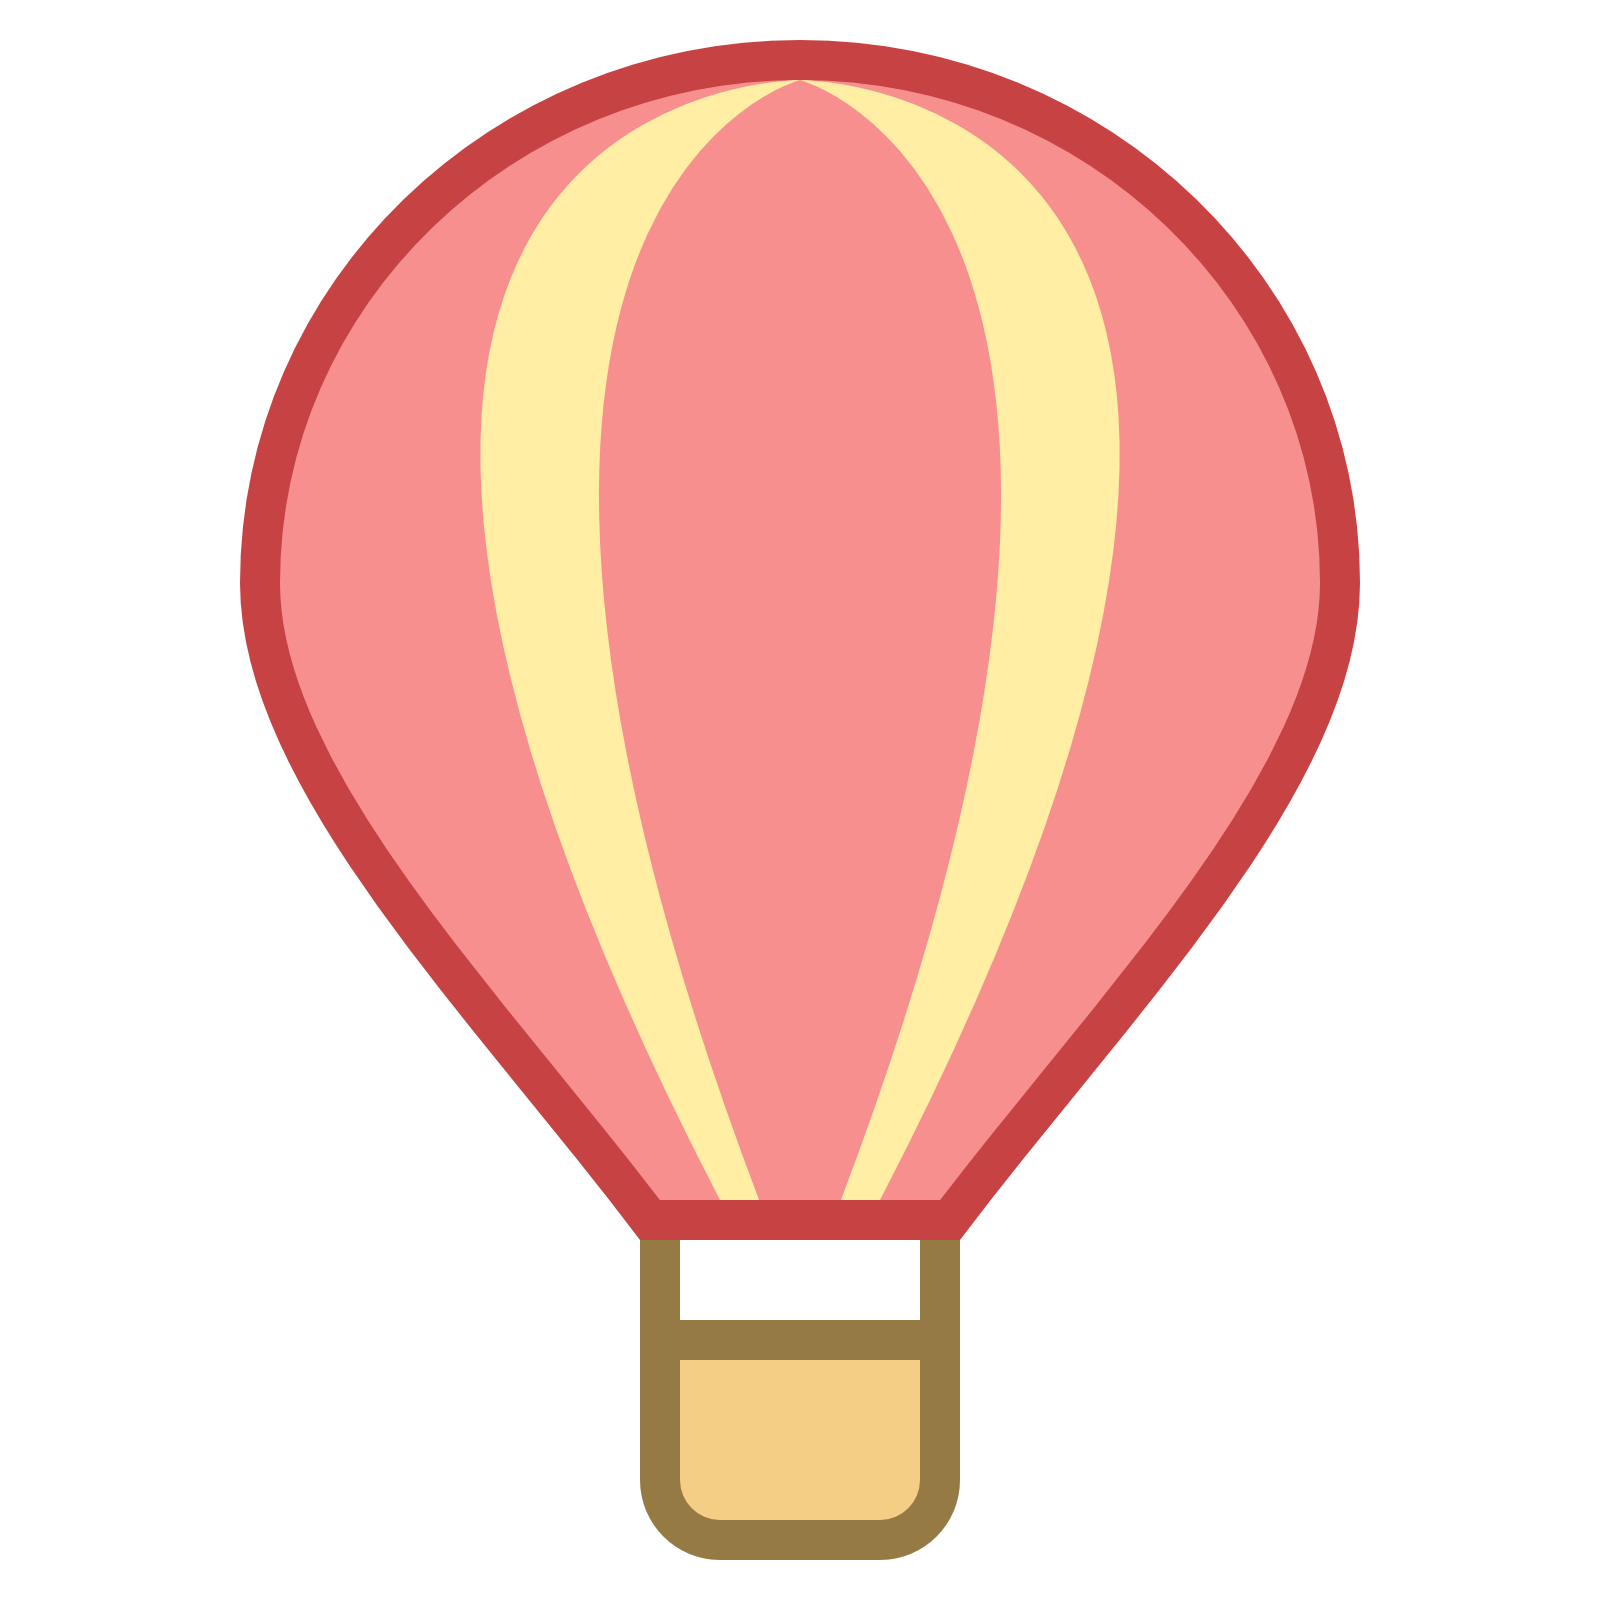 1600x1600 Hot Air Balloon Clipart Air Vehicle